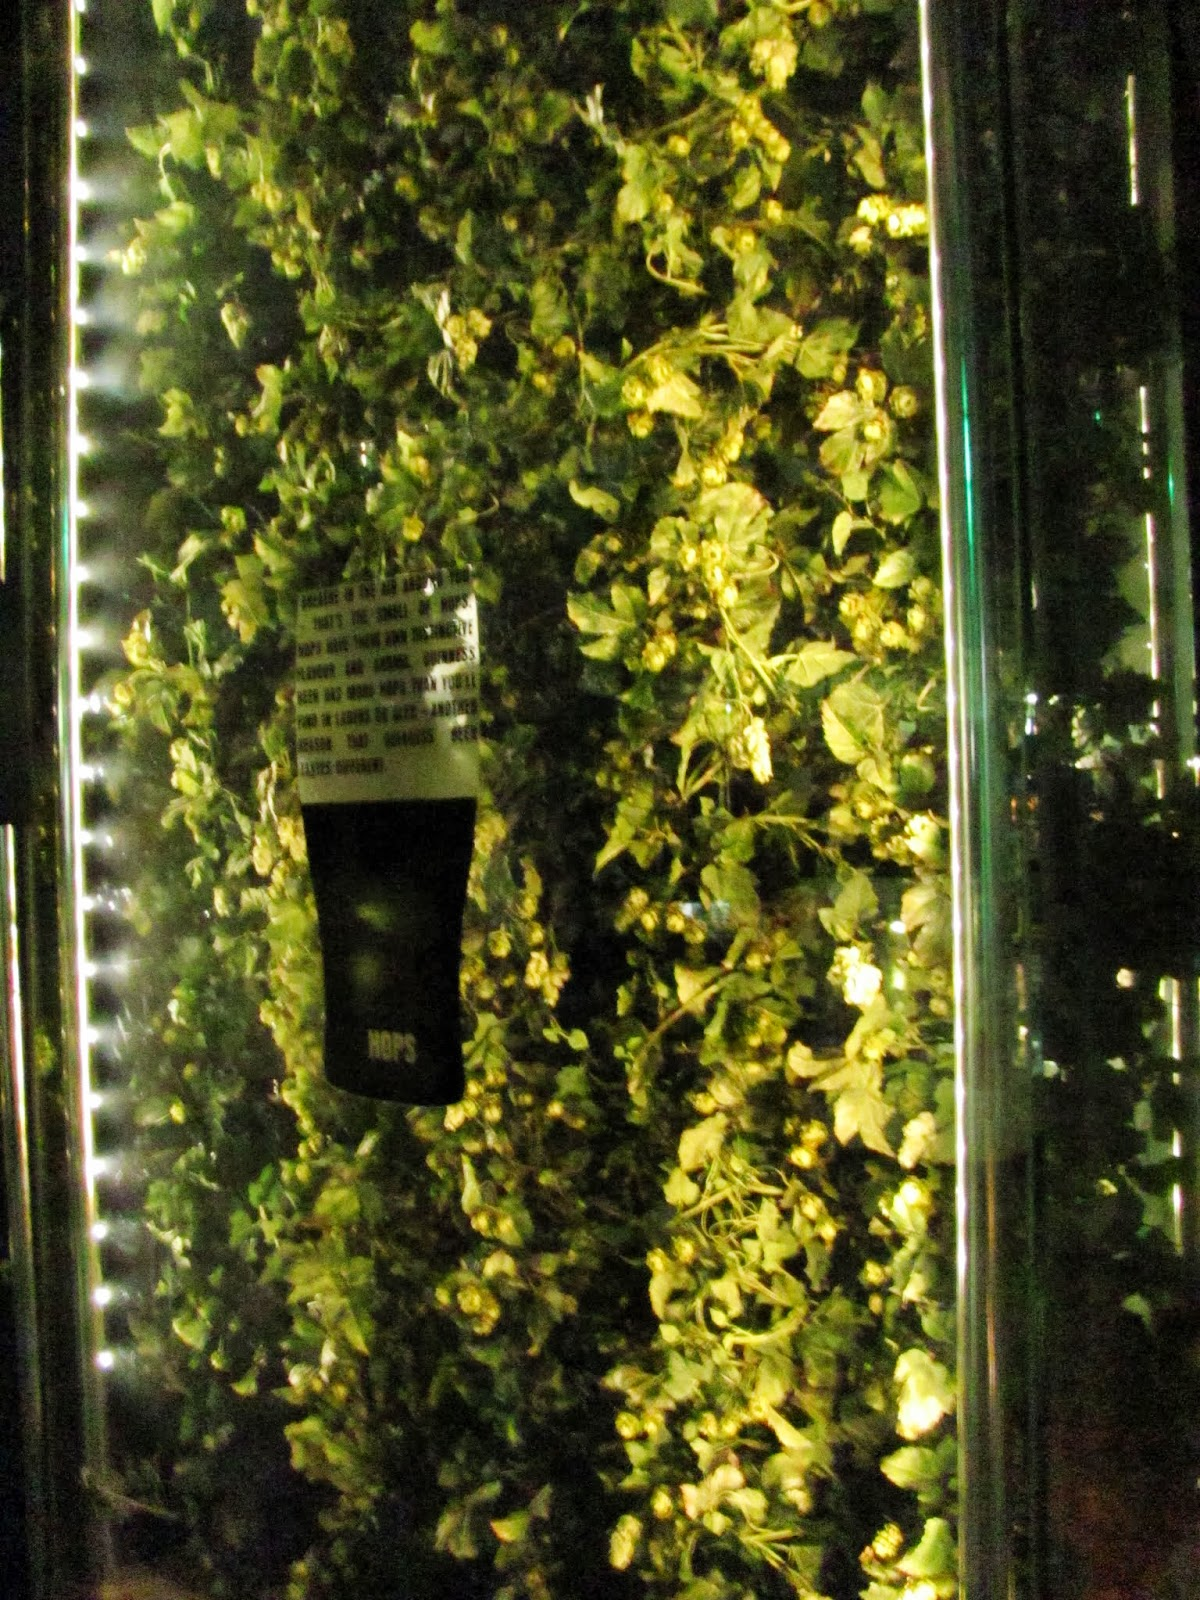 Hops are grown for display at Guinness Storehouse, Dublin, Ireland